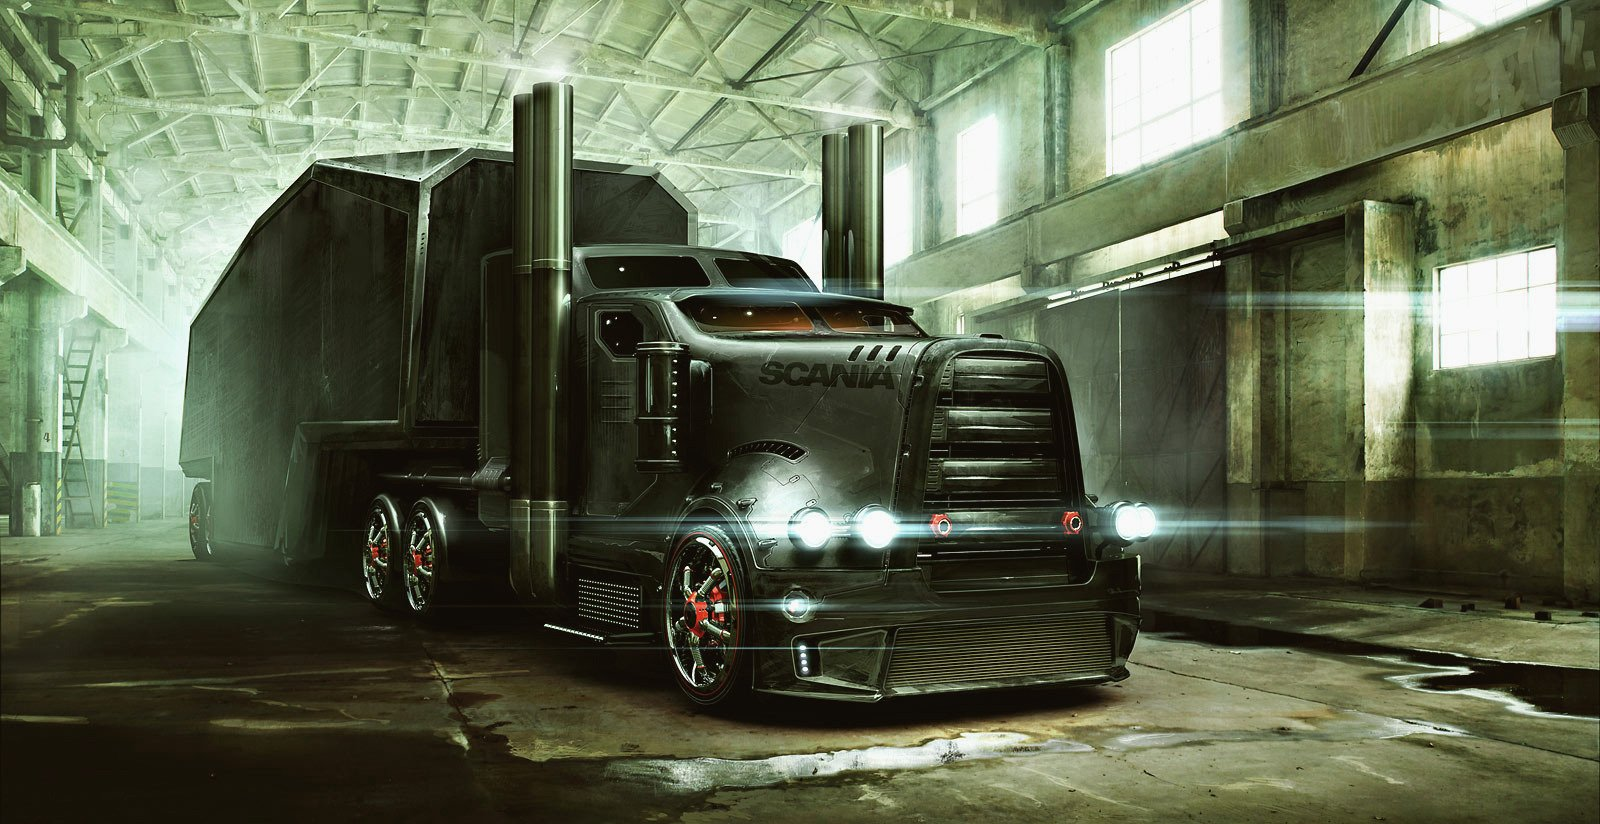 312 Truck Hd Wallpapers Background Images Wallpaper Abyss